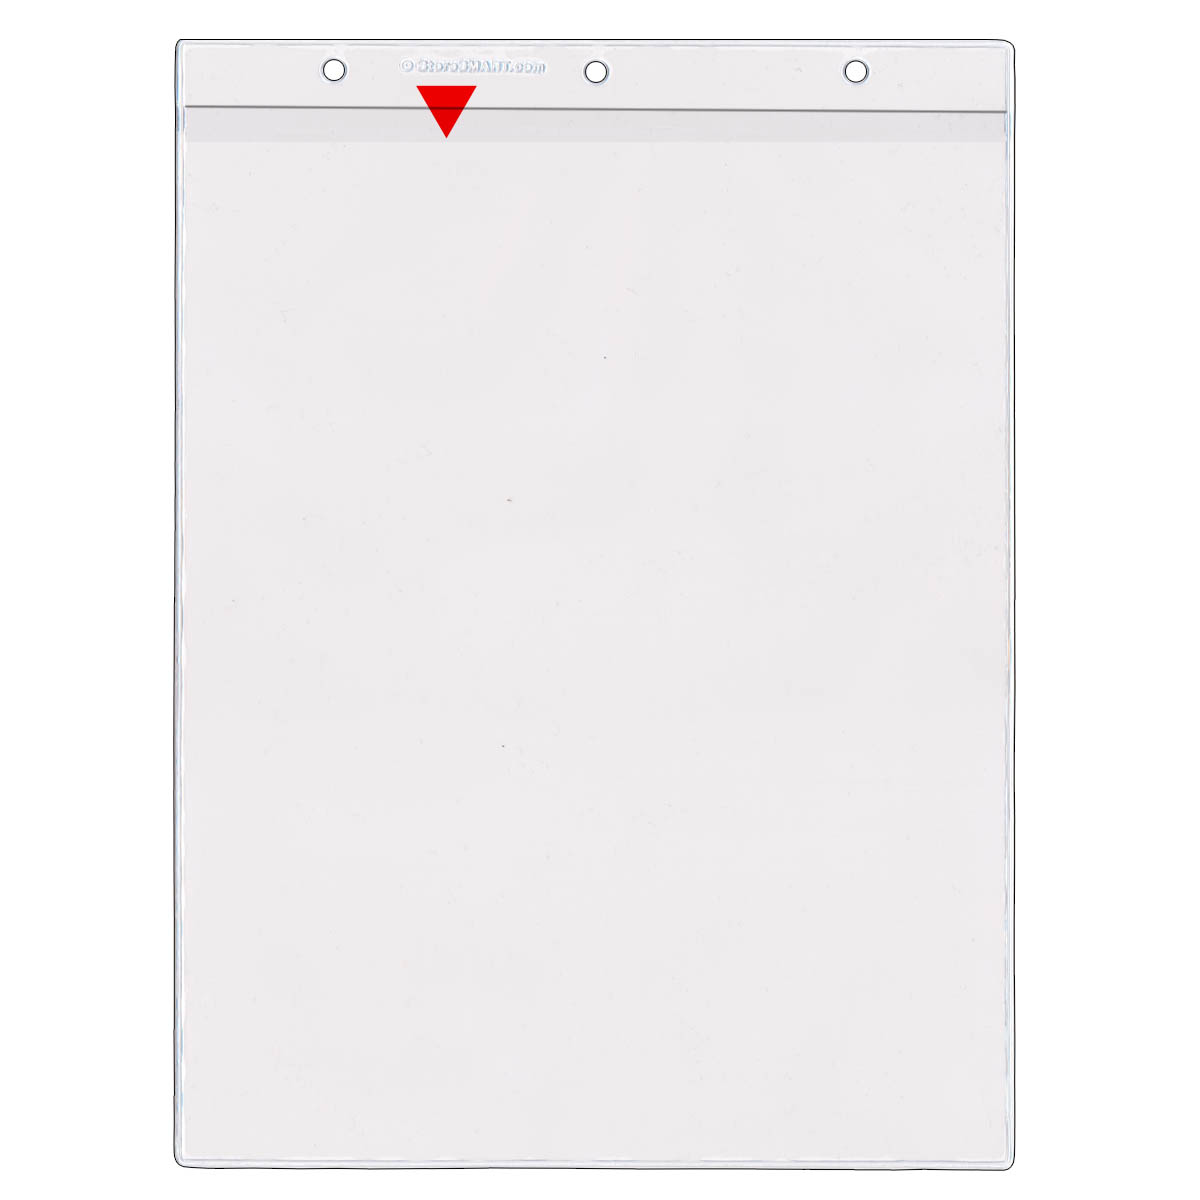 8 189 Quot X 11 Quot Vinyl Sheet Protector Holes On Short Side